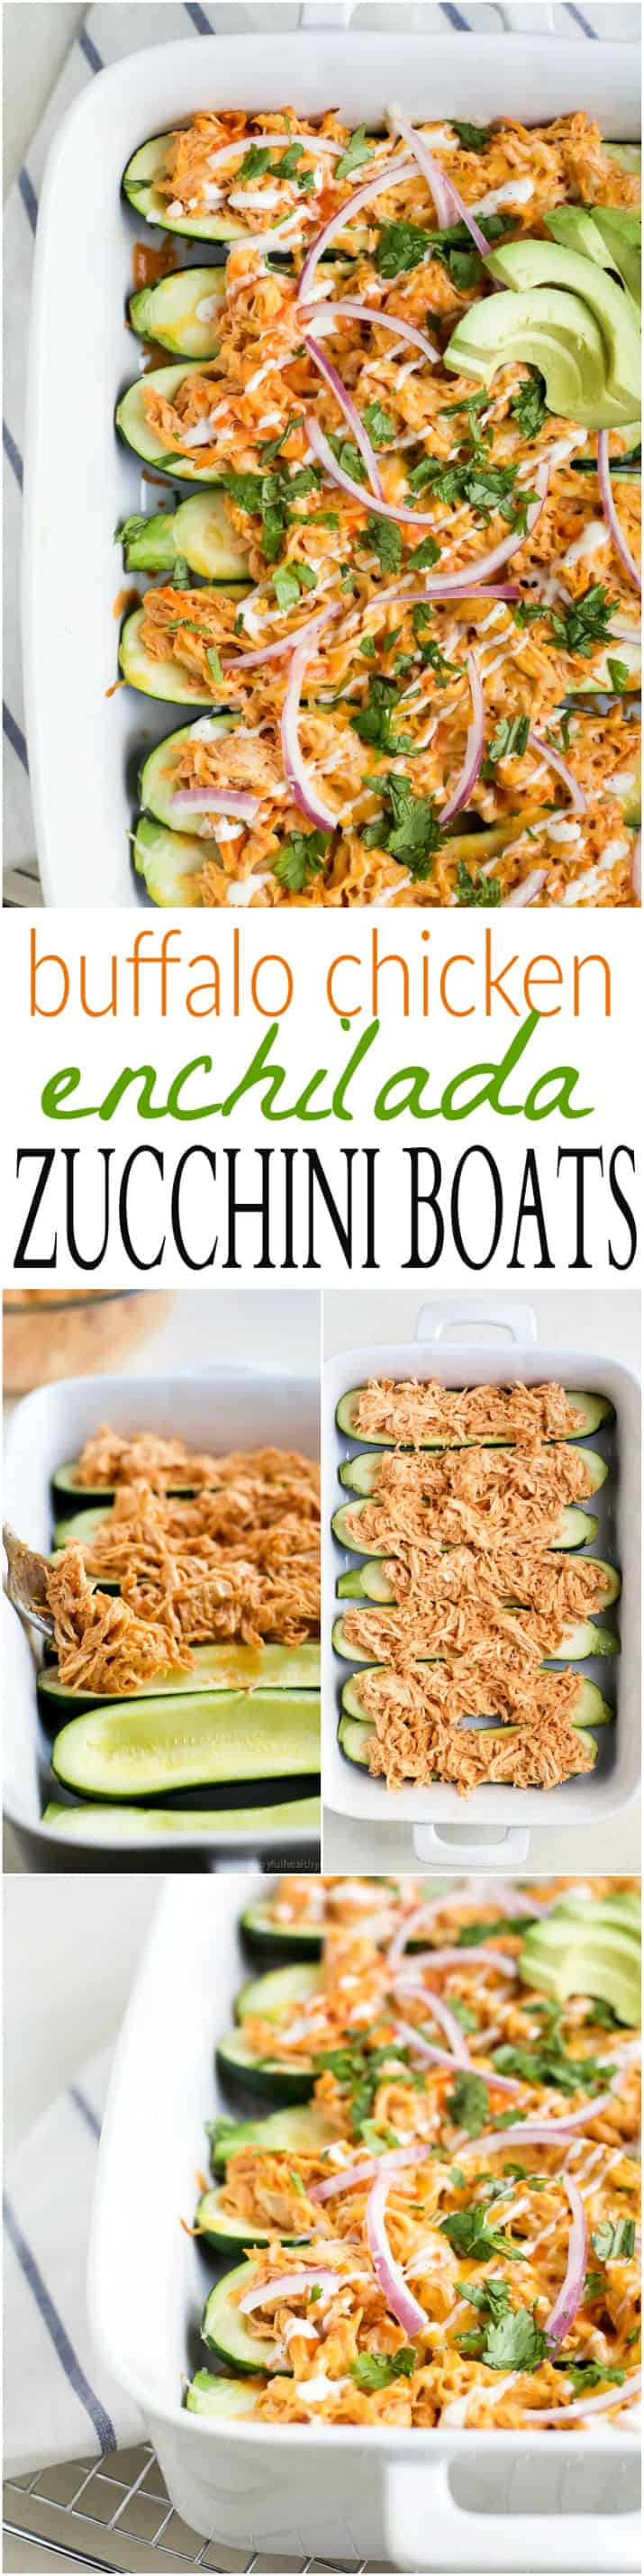 A collage of images of Buffalo Chicken Enchilada Zucchini Boats with recipe title text